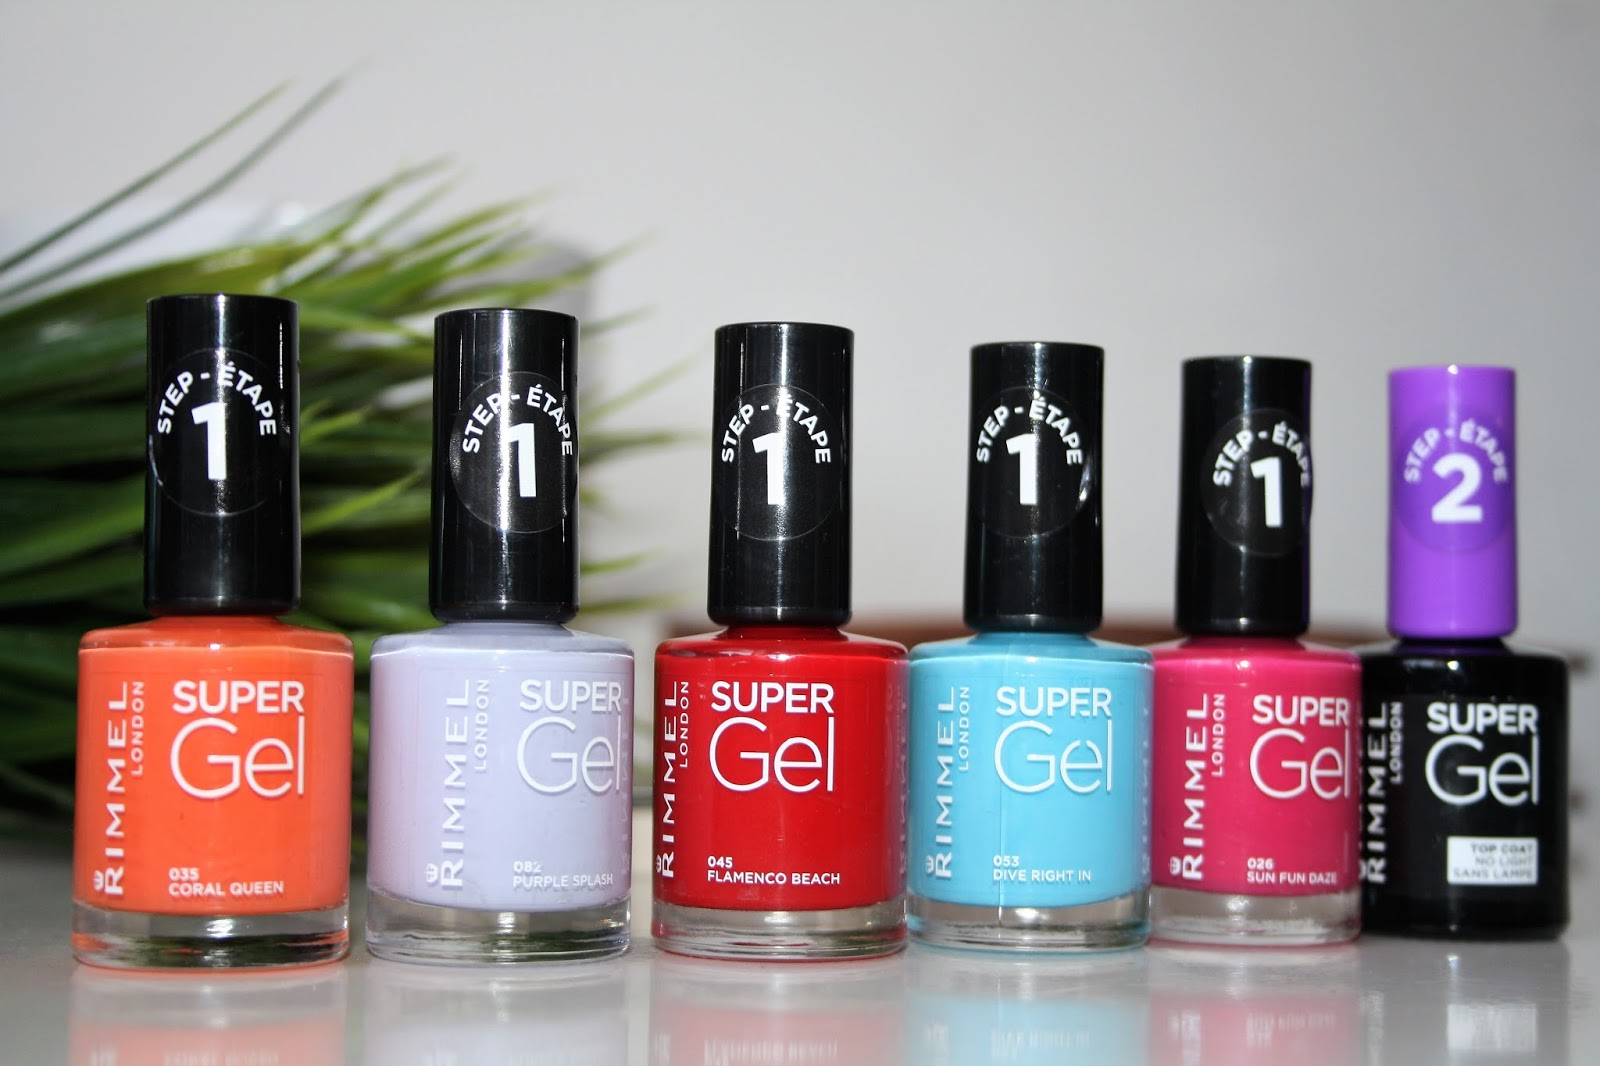 Today I thought i'd share the latest release from Rimmel. They have just released their new Super Gel Polishes and have some gorgeous shades.